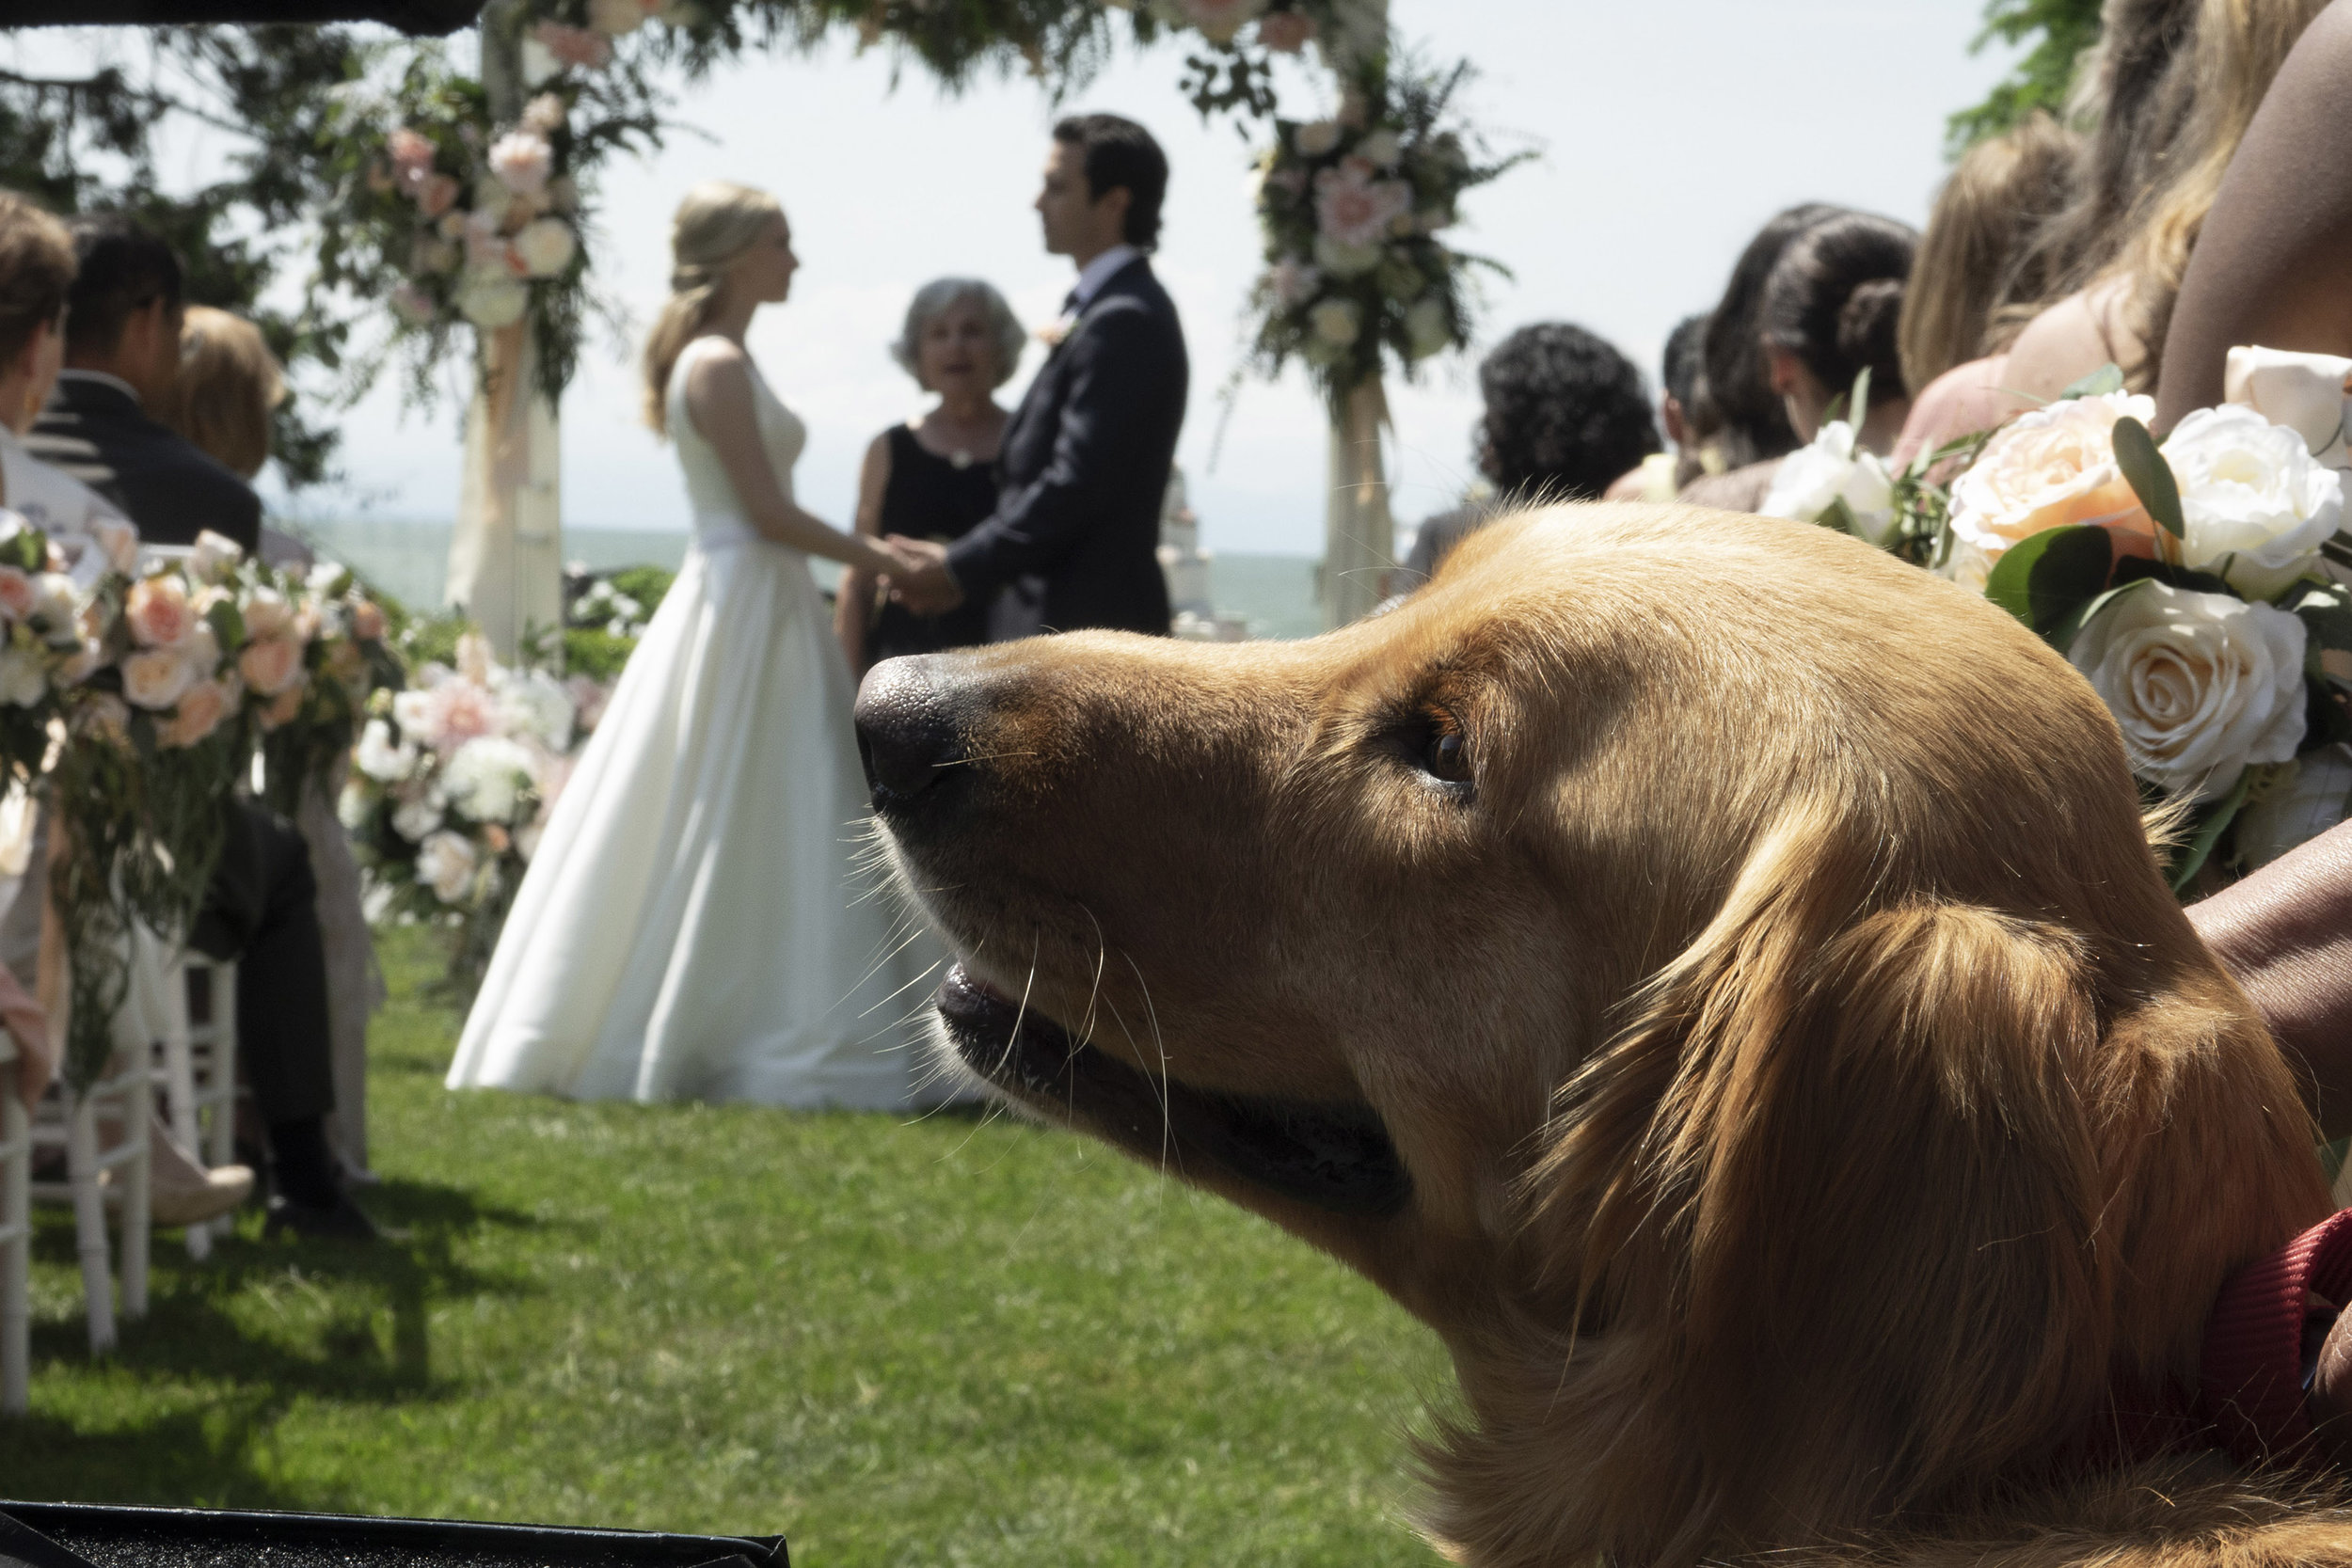 """Enzo, a labrador, is ringbearer at the wedding of Eve (Amanda Seyfreid) and Denny (Milo Ventimiglia) in a scene from the drama """"The Art of Racing in the Rain."""" (Photo by Doane Gregory, courtesy of 20th Century Fox.)"""